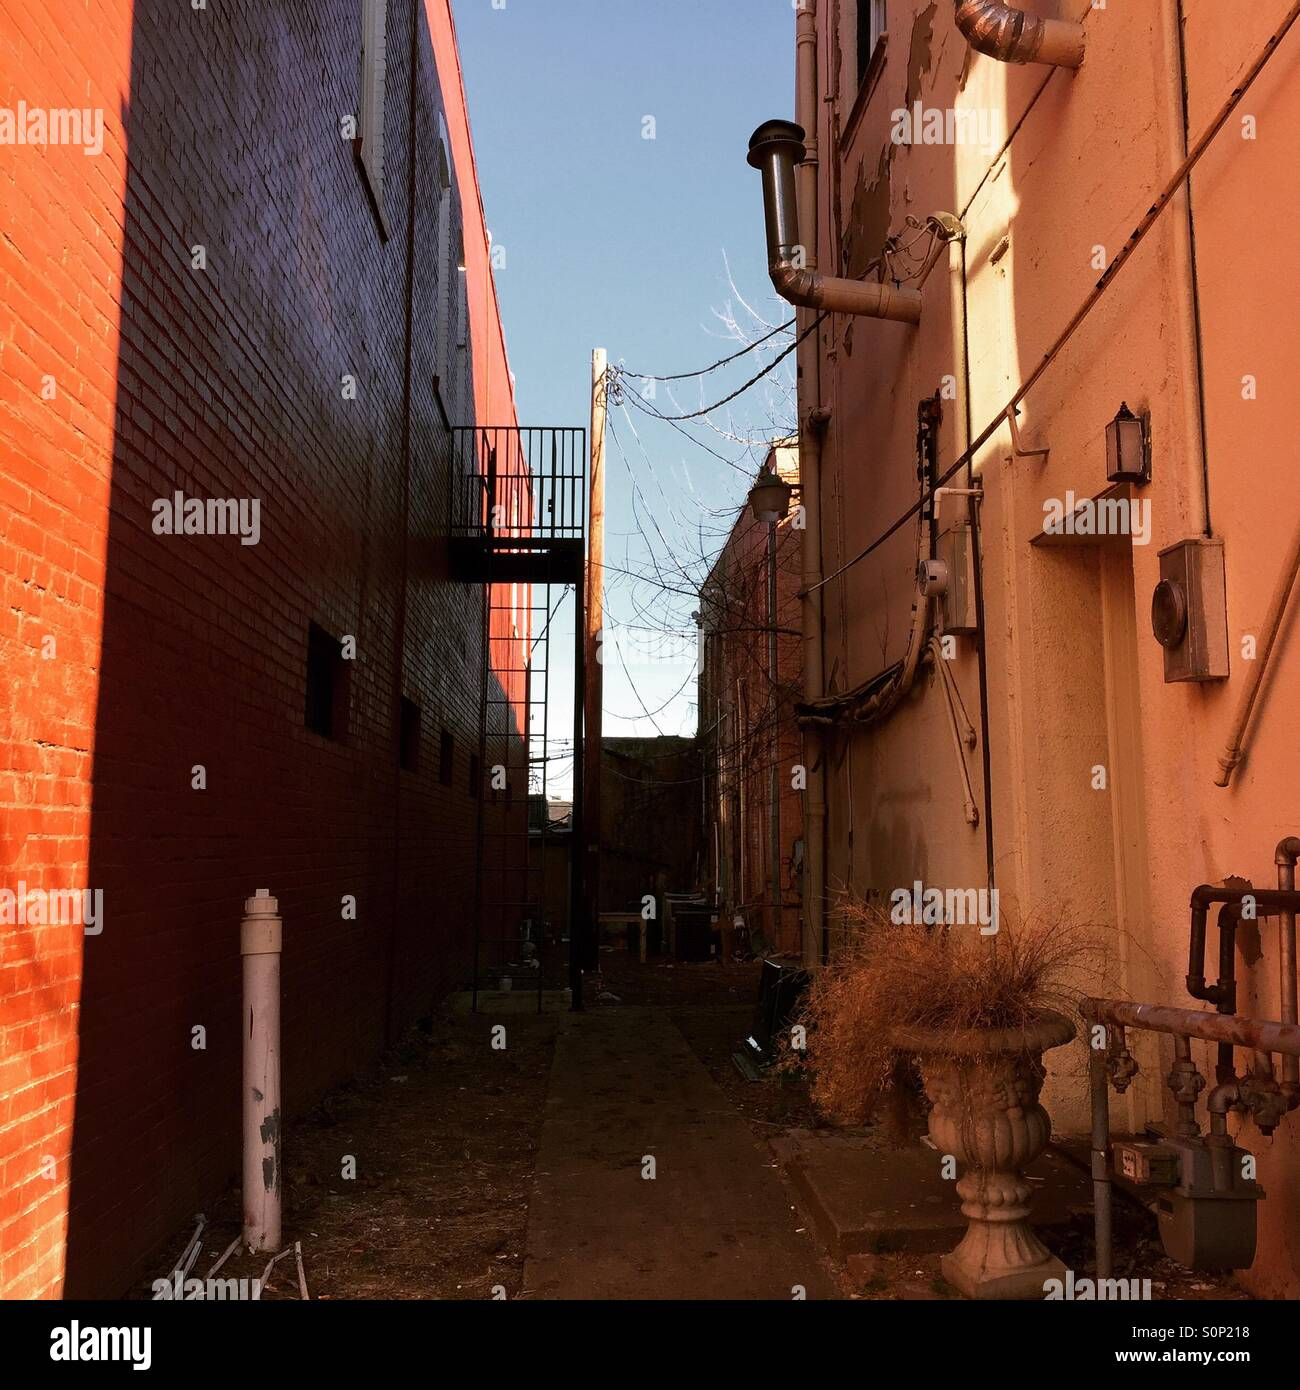 Alley way - Stock Image